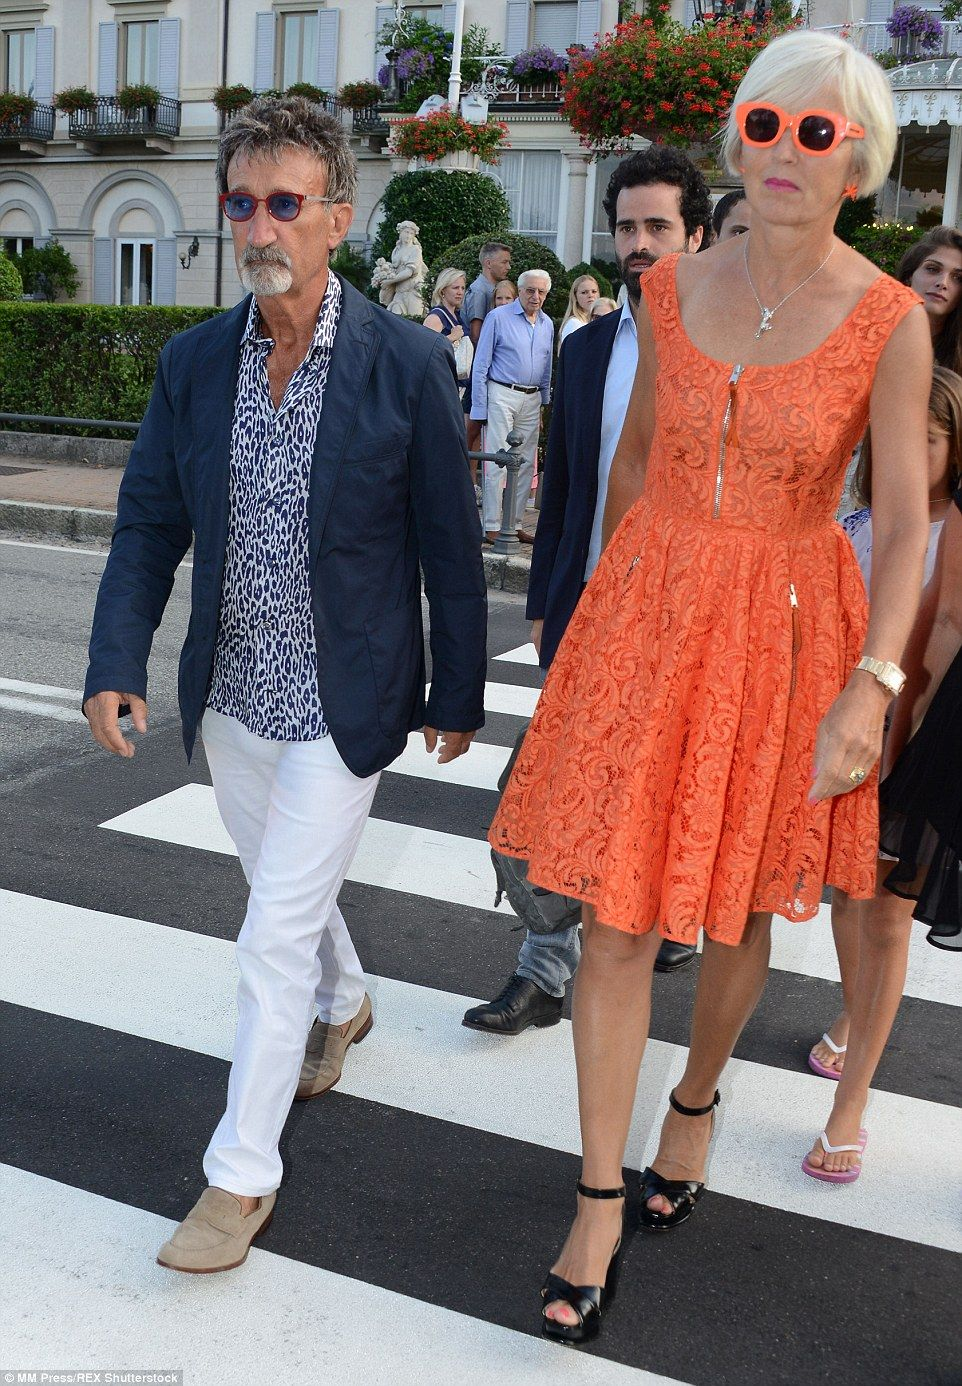 Beatrice Borromeo and Pierre Casiraghi arrive ahead of